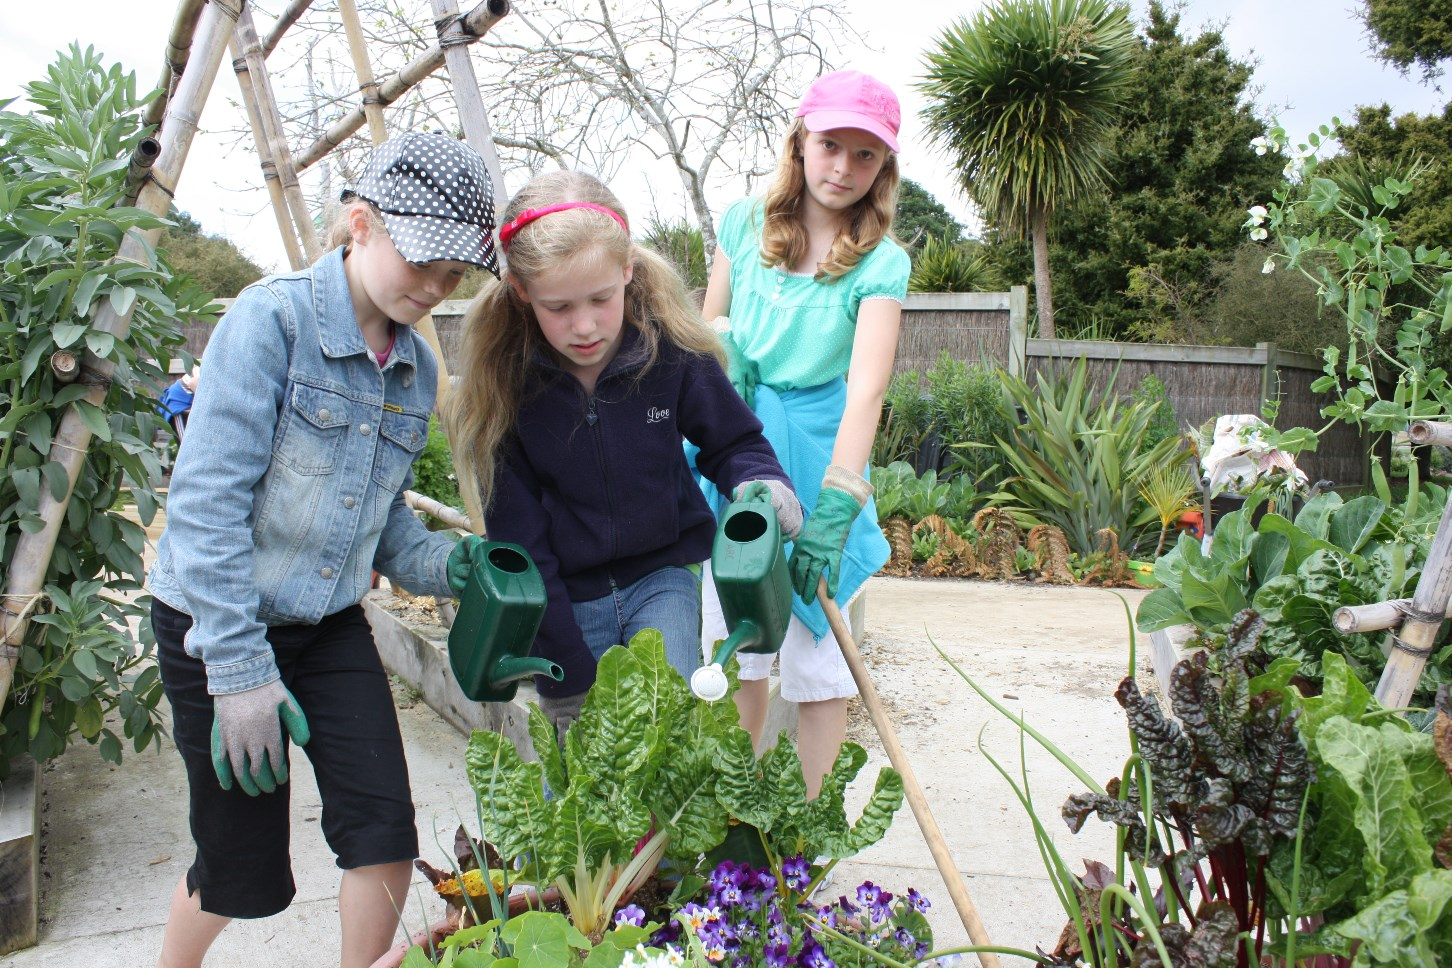 Edible gardening with kids - Auckland Botanic Gardens